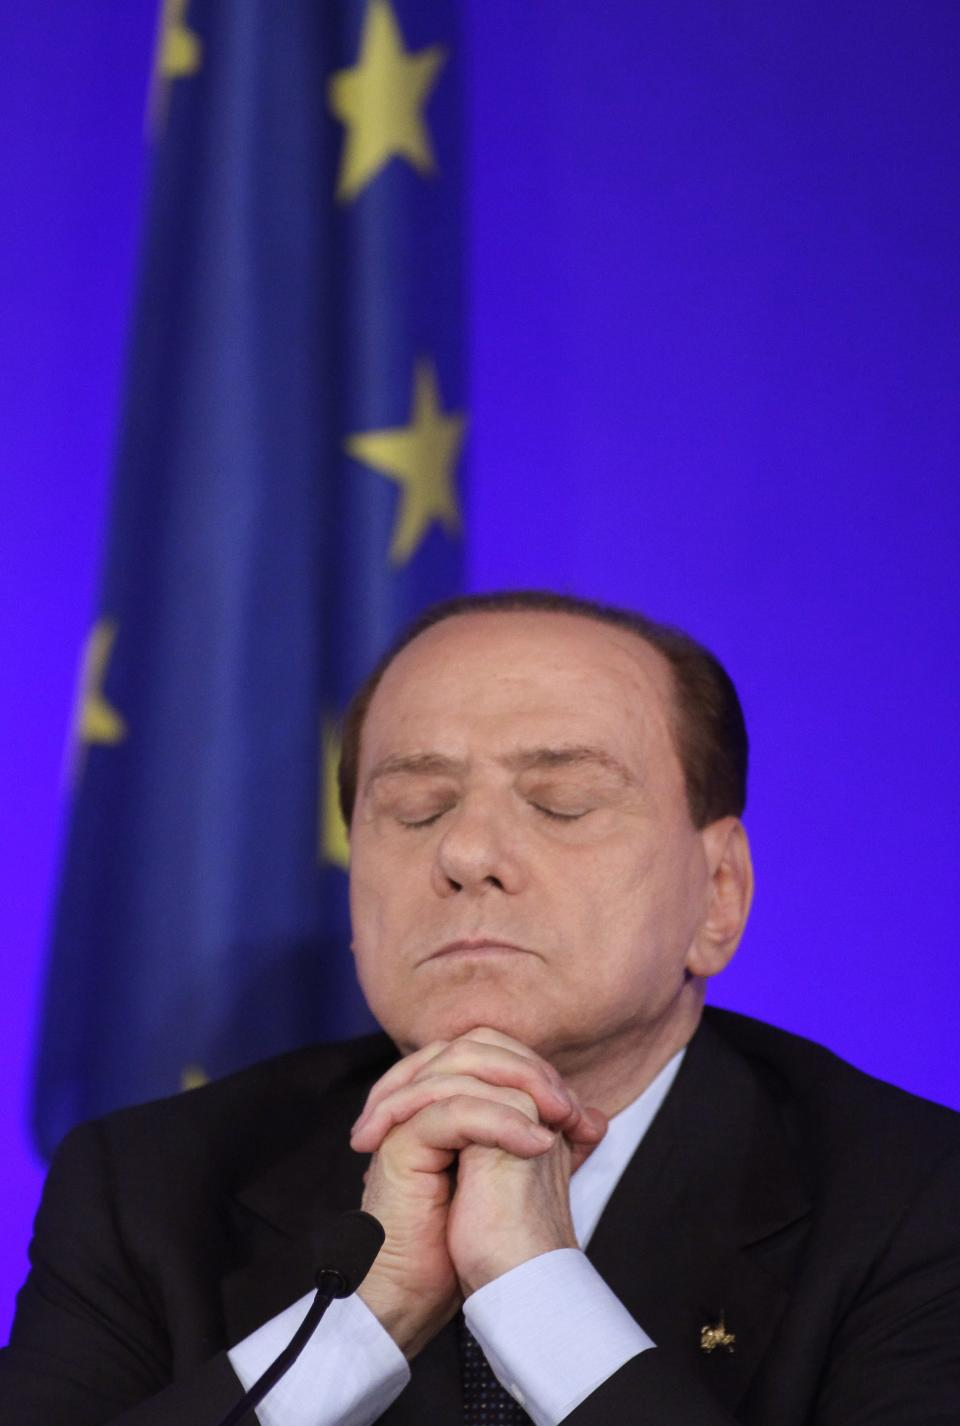 Italian Prime Minister Silvio Berlusconi pauses before speaking during a media conference at a G20 summit in Cannes, France on Friday, Nov. 4, 2011. Leaders from within troubled Europe and far beyond are working Friday on ways the International Monetary Fund could do more to calm Europe's debt crisis. (AP Photo/Michel Euler)